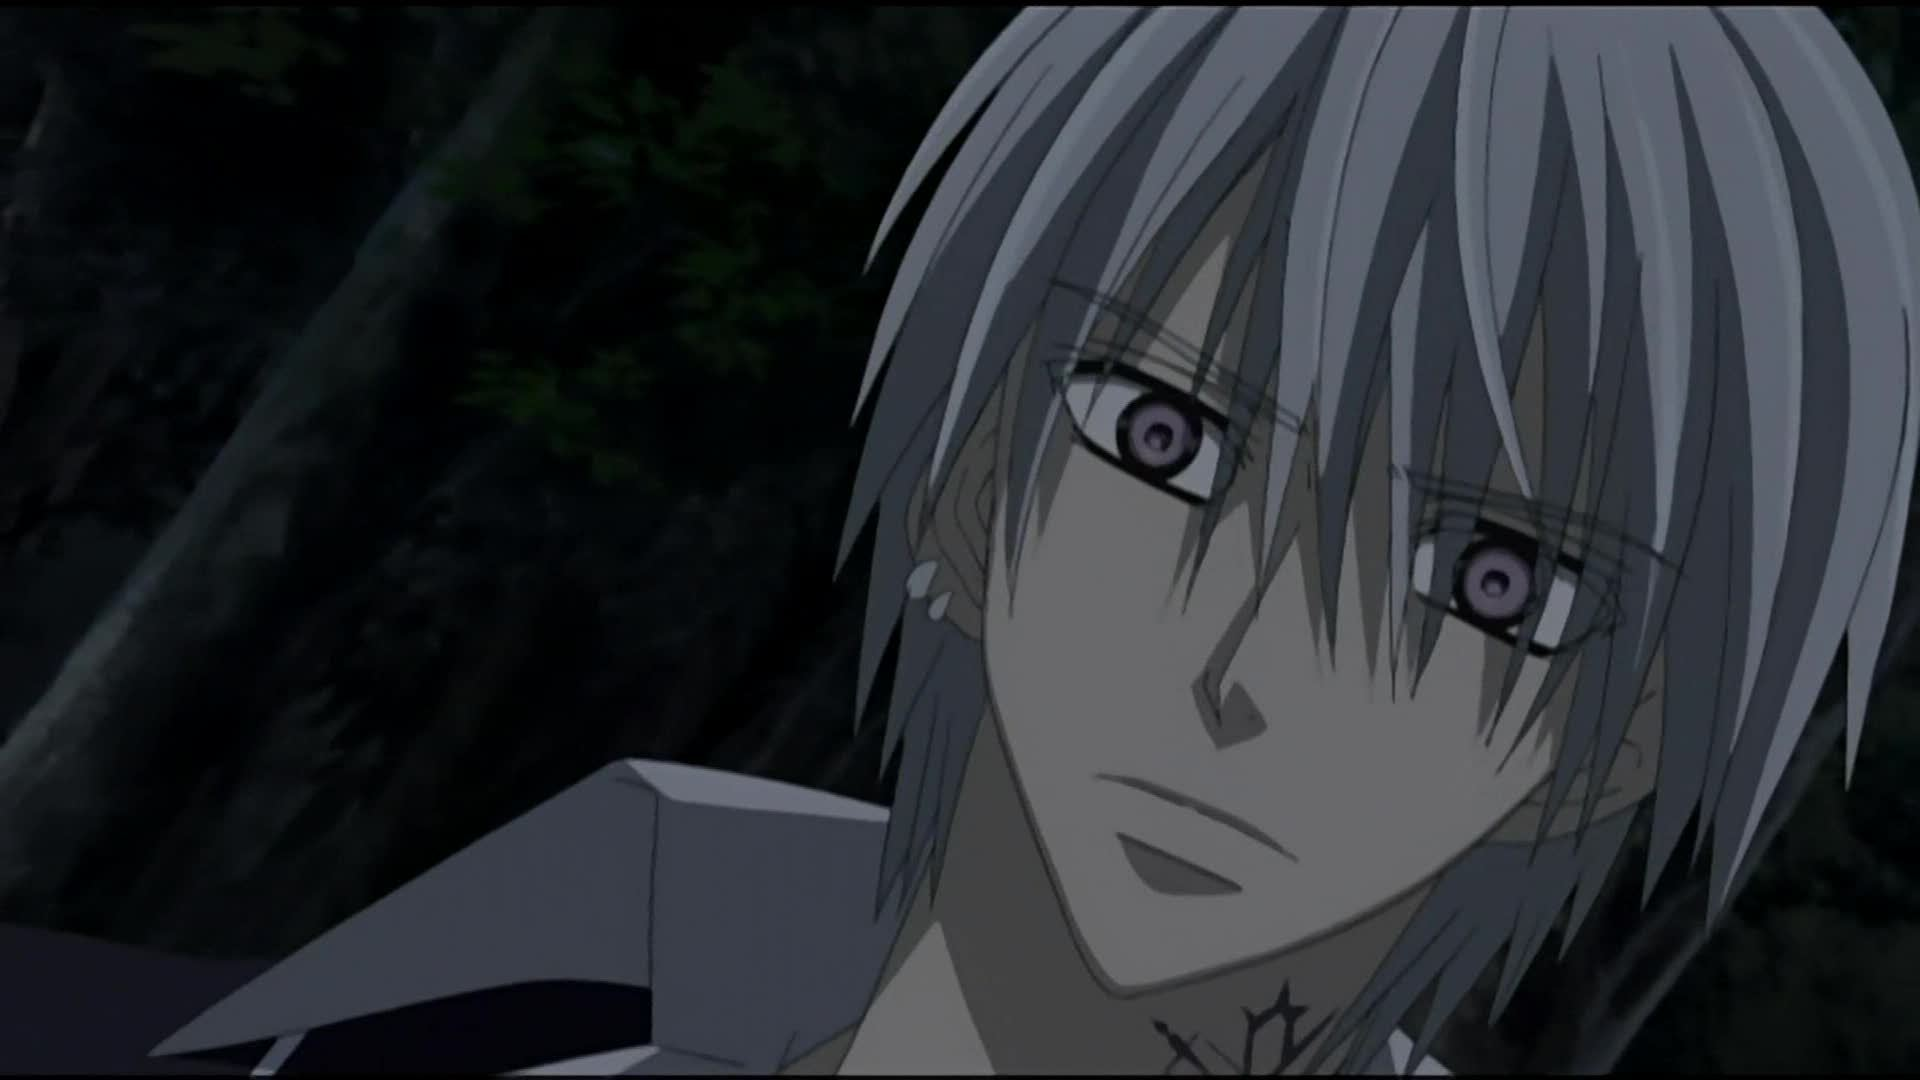 vampire knight wallpaper hd - photo #28